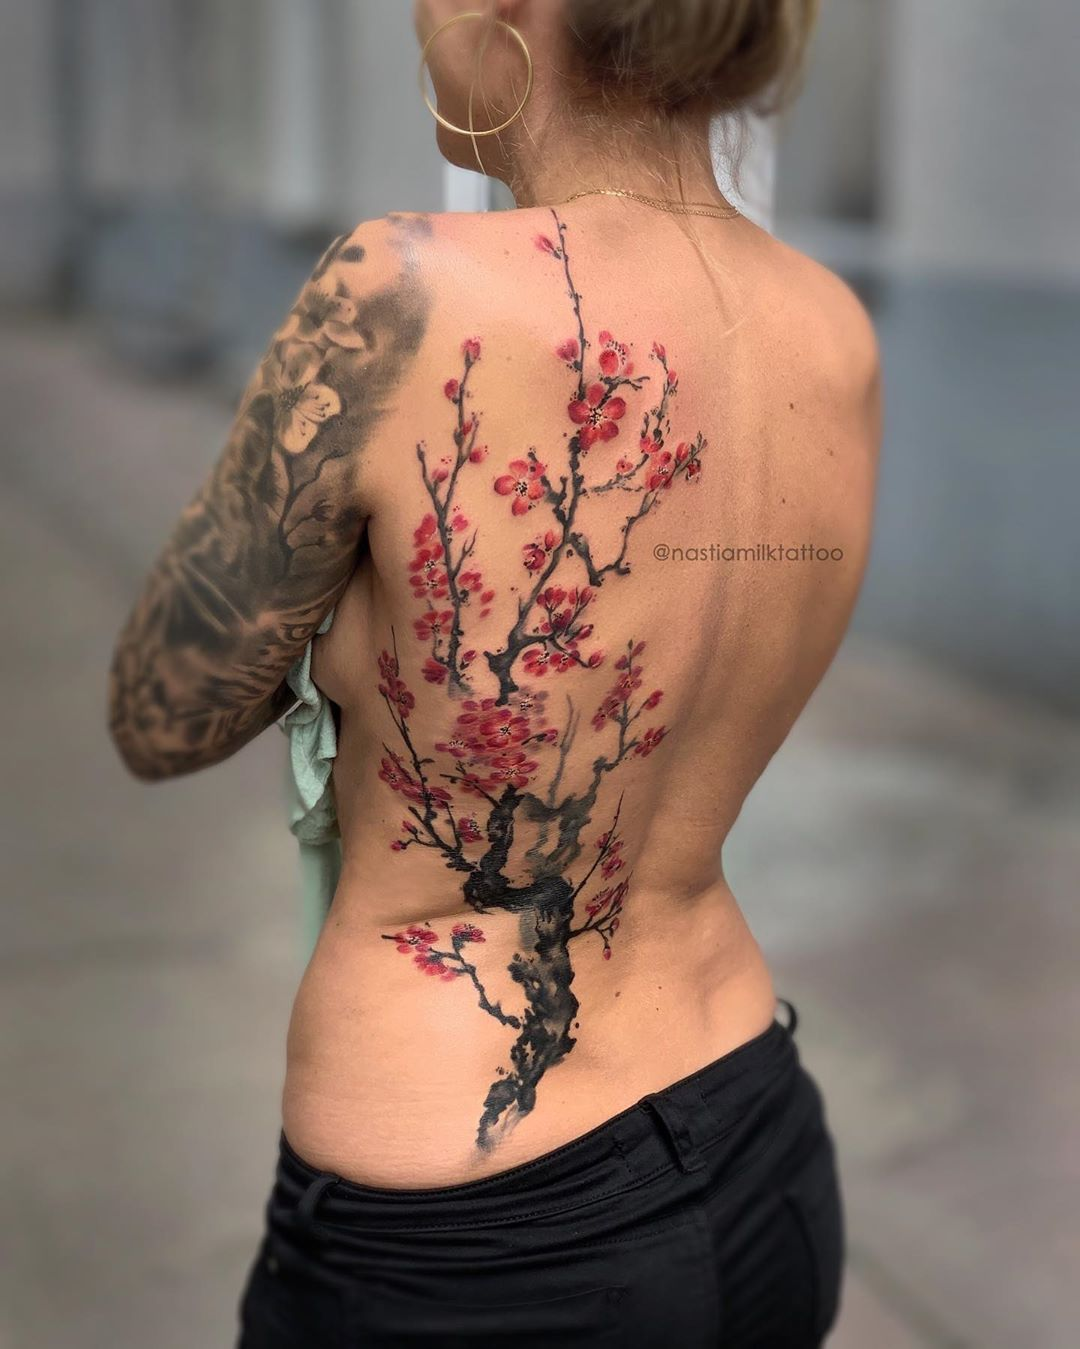 Cherry Blossom Back Piece Dm Me To Book And Appointment Cherryblossomtatt Cherry Tree Tattoos Cherry Blossom Tree Tattoo Blossom Tree Tattoo